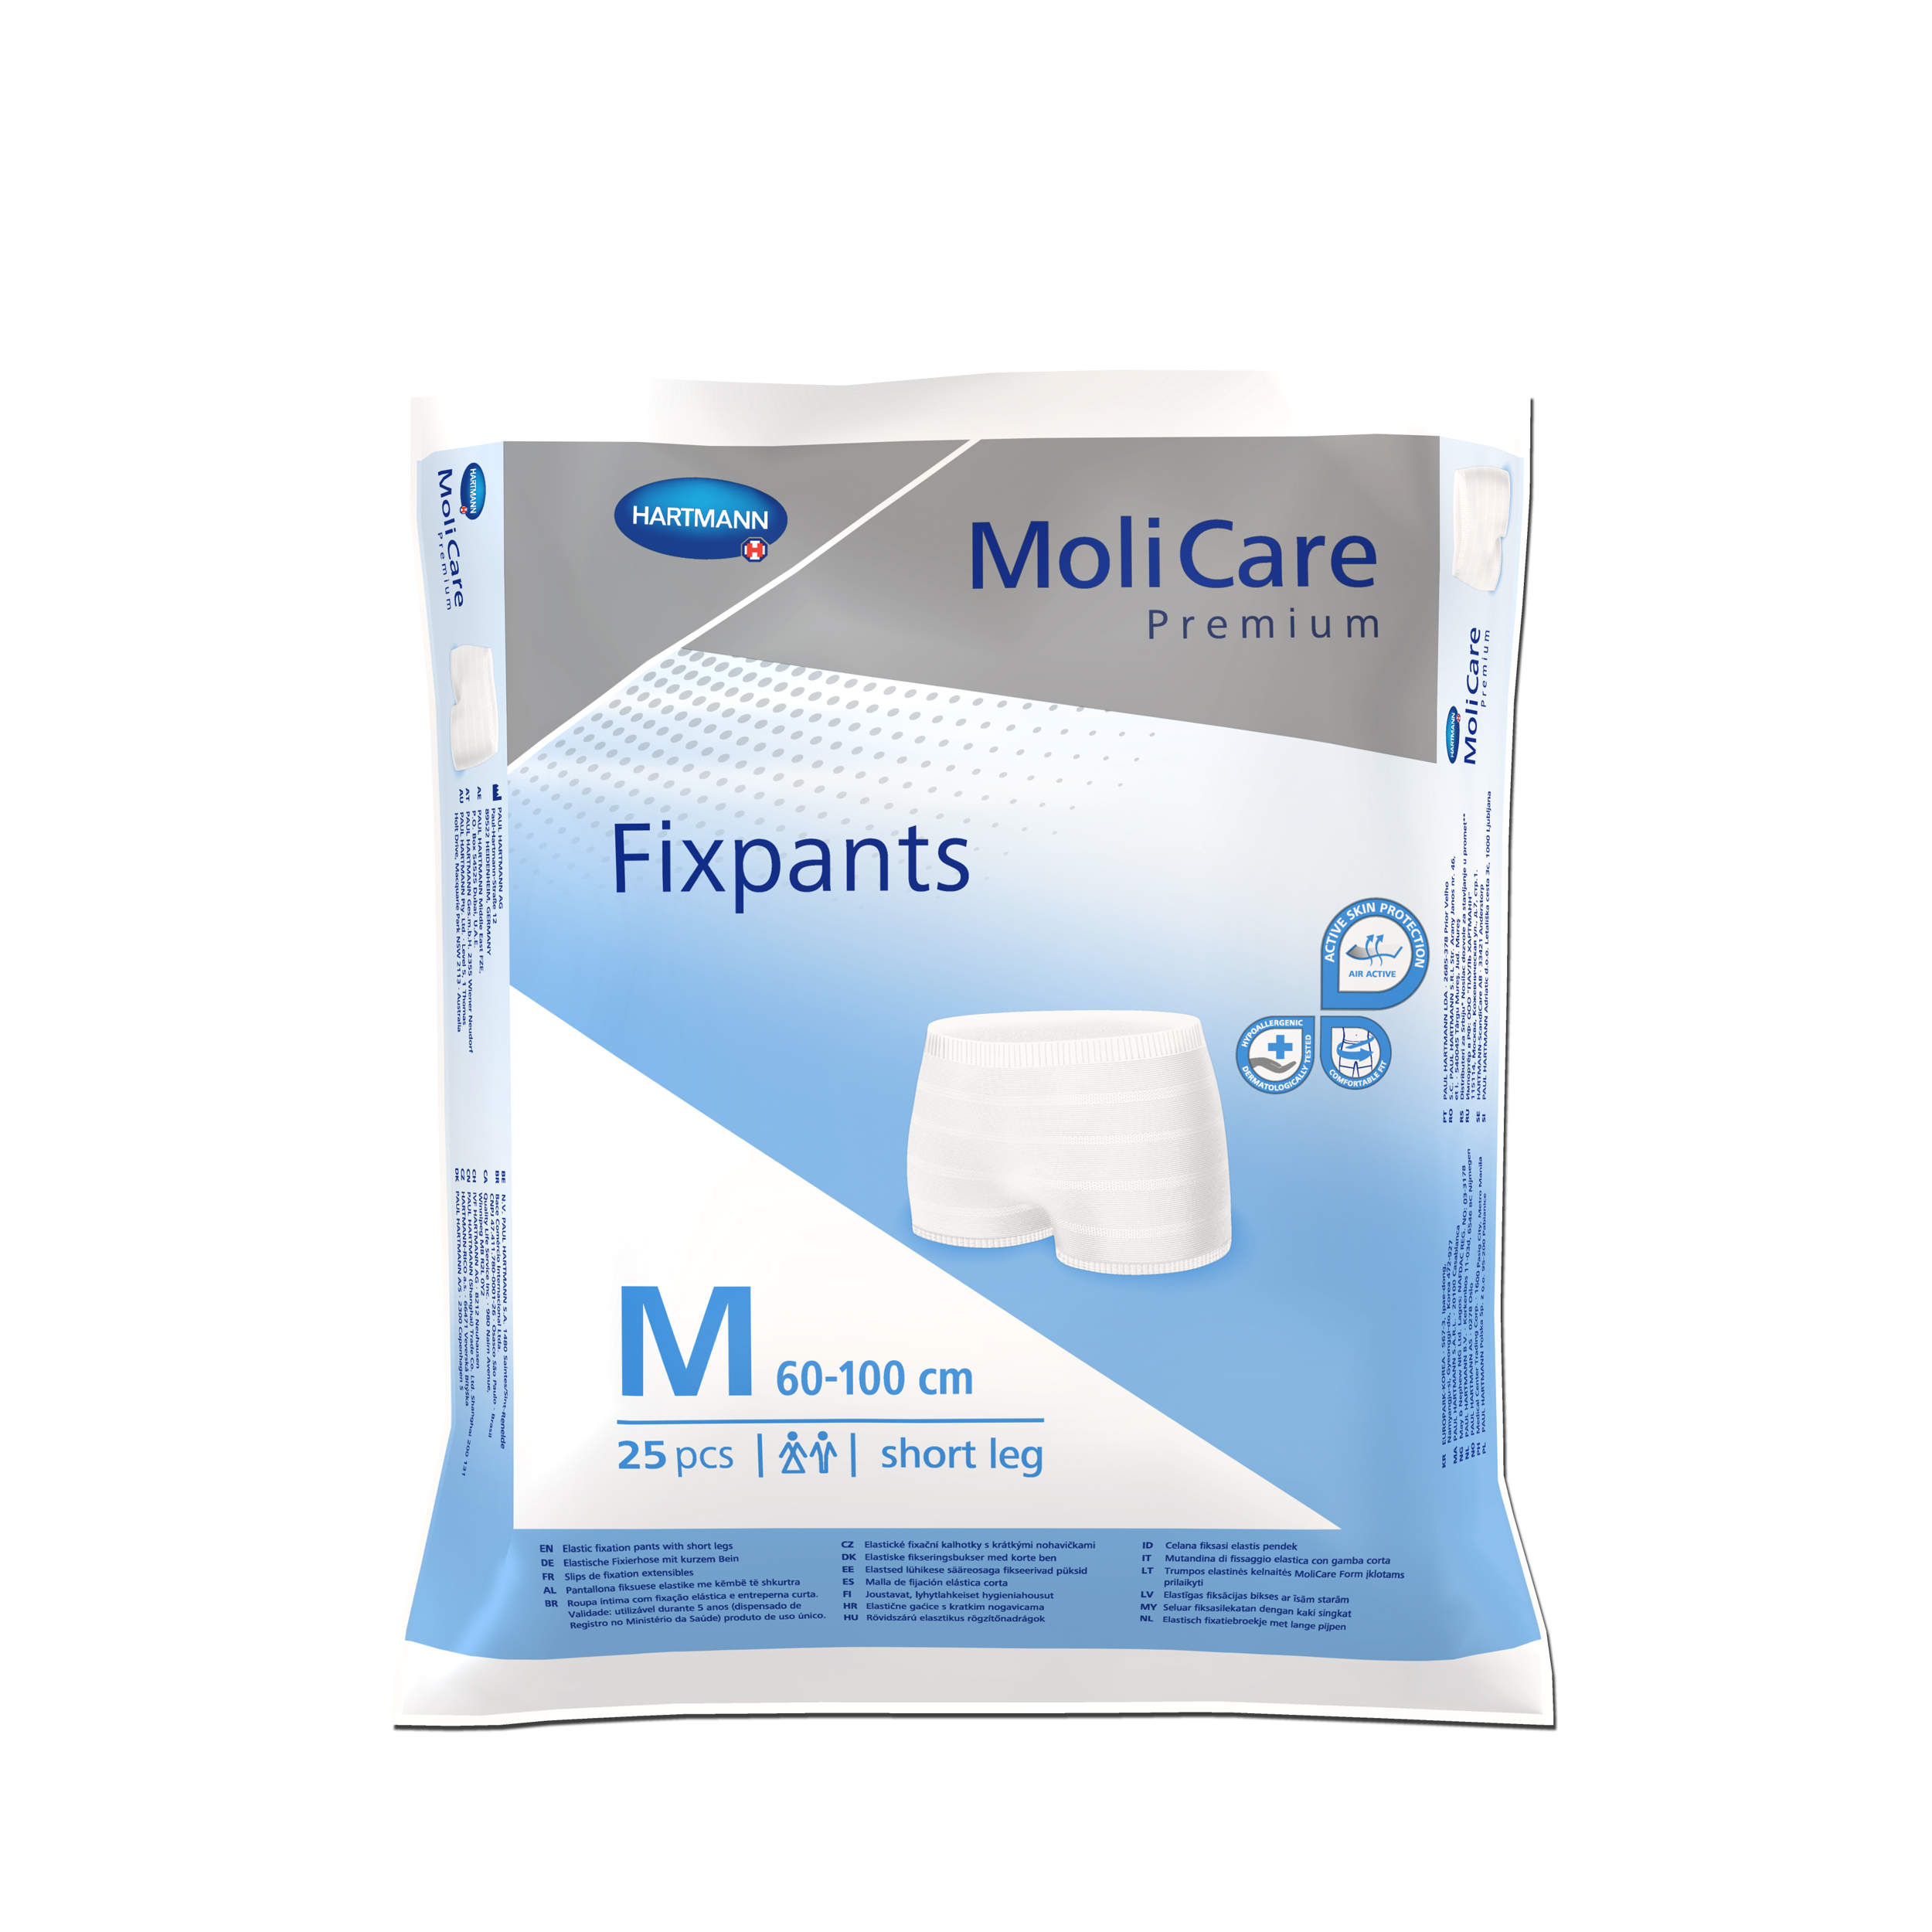 MoliCare Fixpants Short Leg